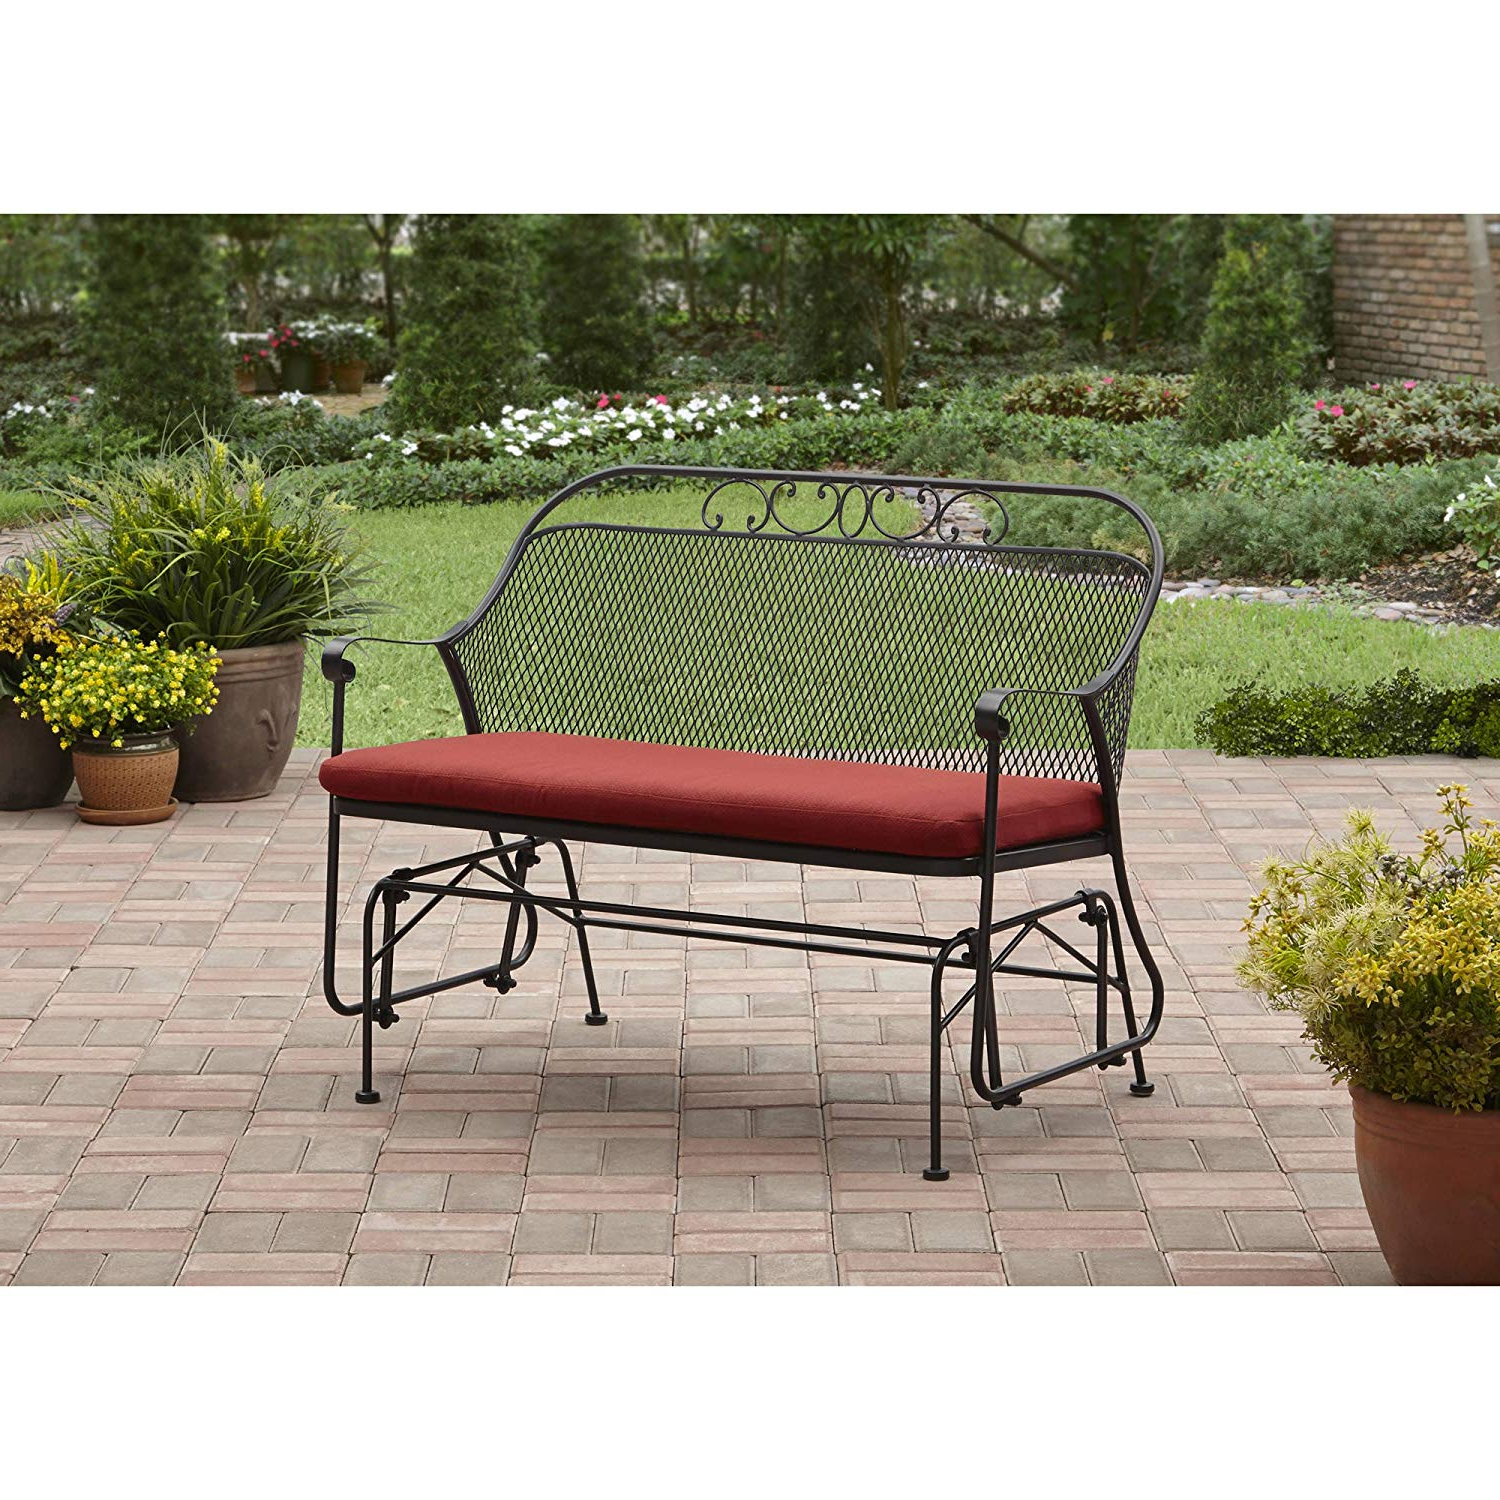 Cheap Outdoor Cushion Fabric Water Resistant, Find Outdoor Within Well Liked Outdoor Swing Glider Chairs With Powder Coated Steel Frame (Gallery 30 of 30)